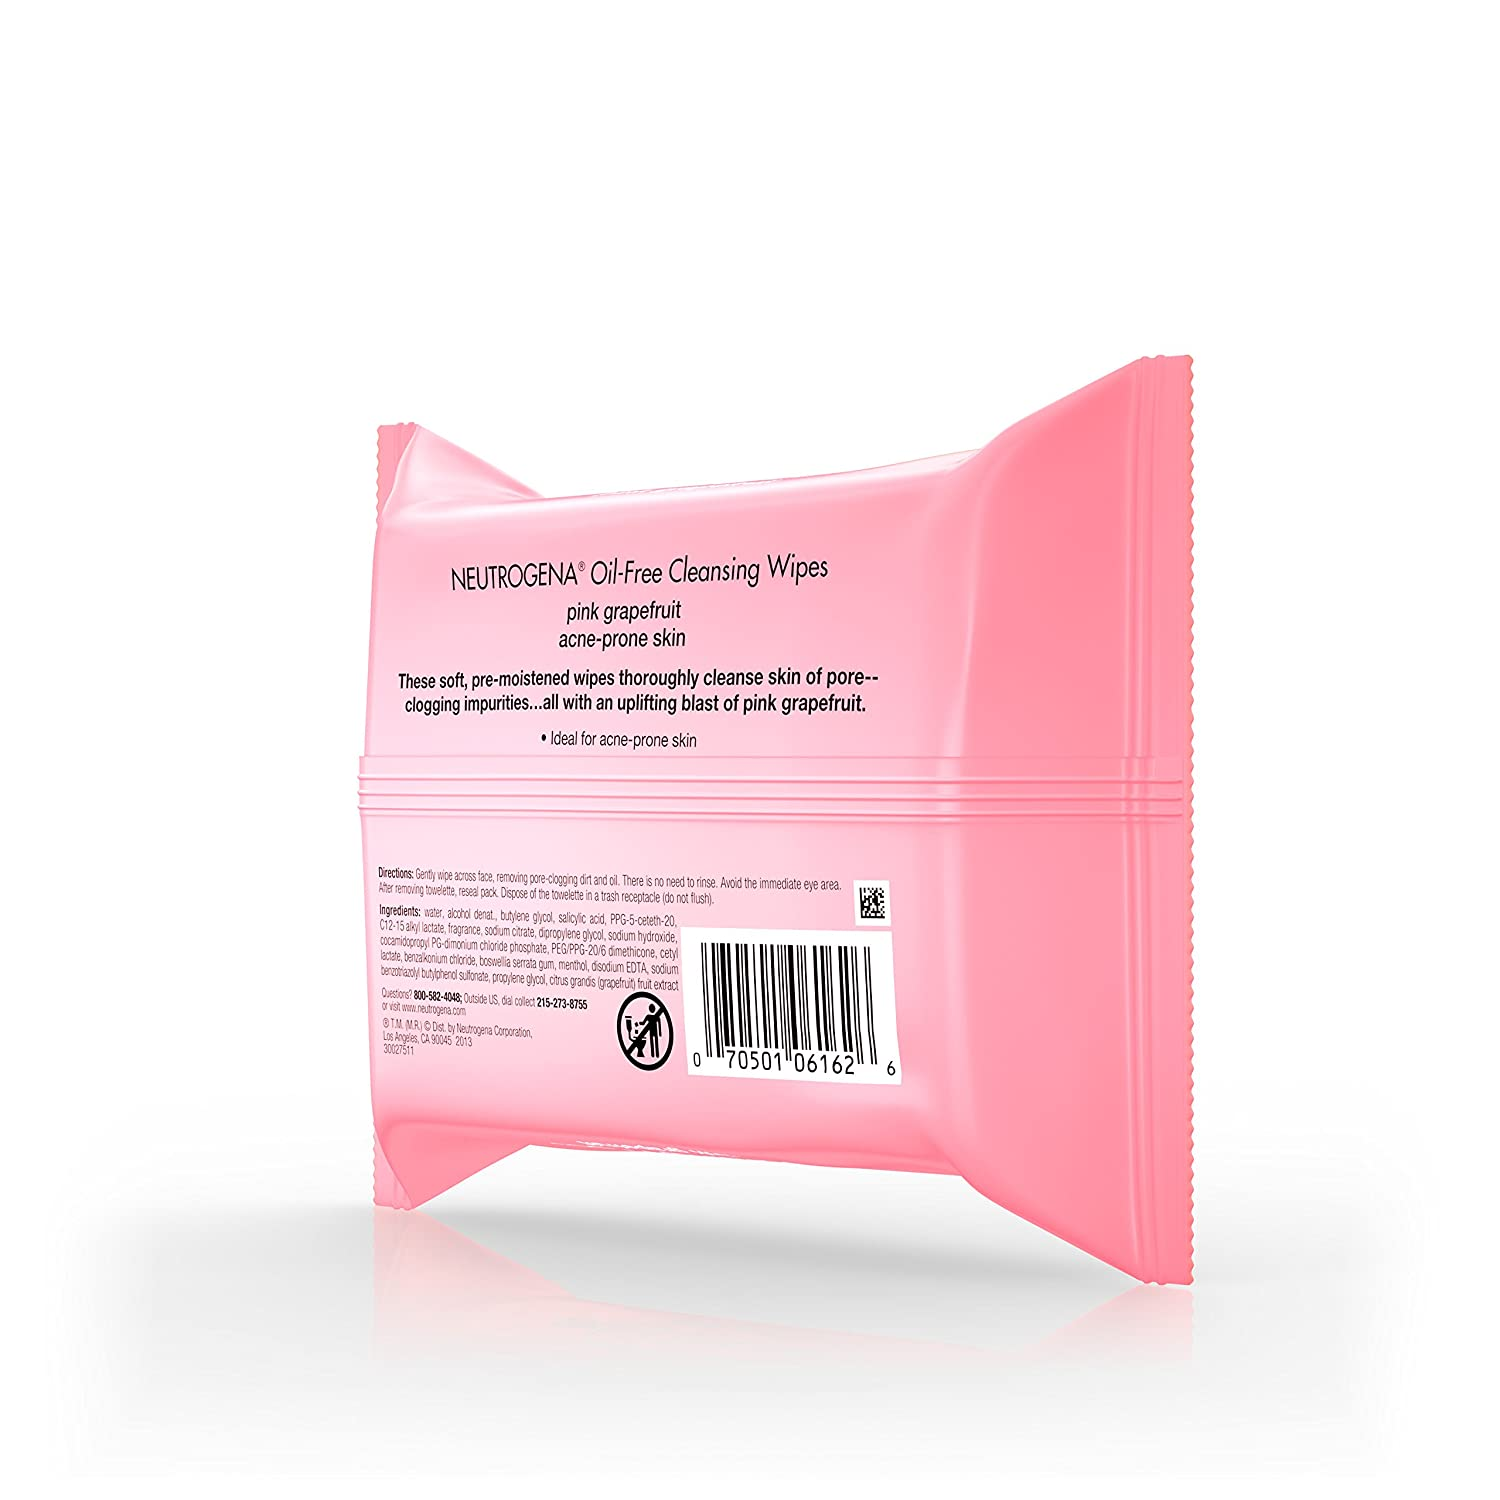 Neutrogena Cleansing Wipes, Pink Grapefruit, 25 Count by Neutrogena: Amazon.es: Belleza